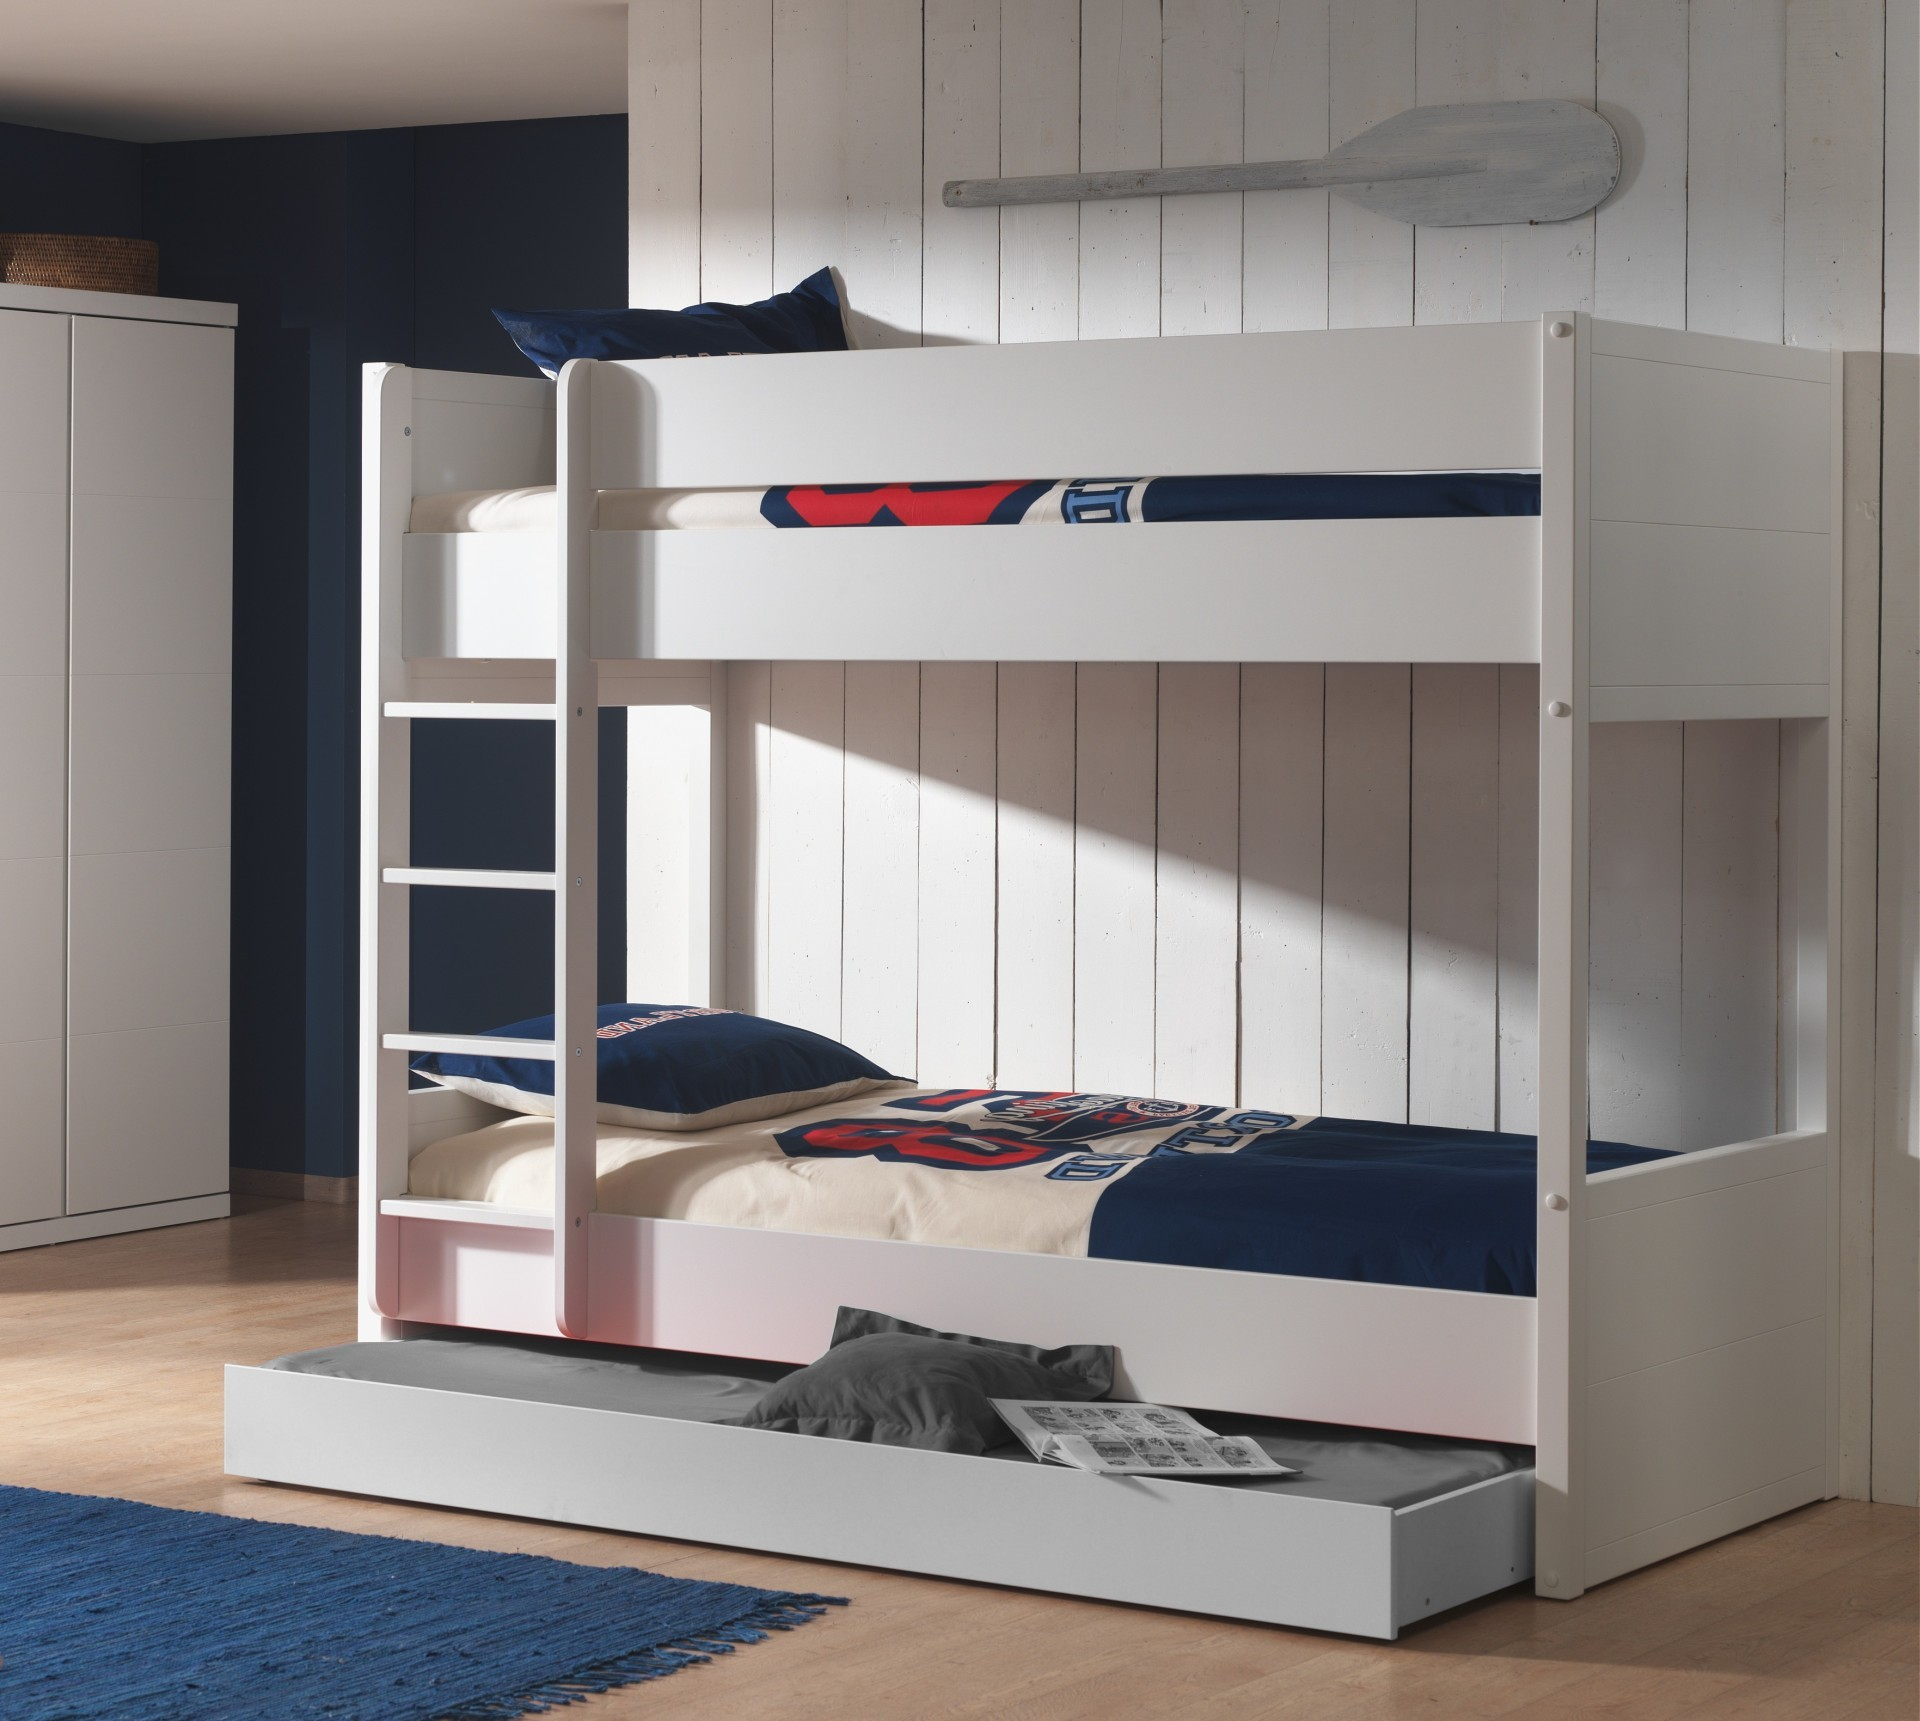 etagenbett lara 2 liegefl chen 90 x 200 cm wei kinder jugendzimmer lara. Black Bedroom Furniture Sets. Home Design Ideas